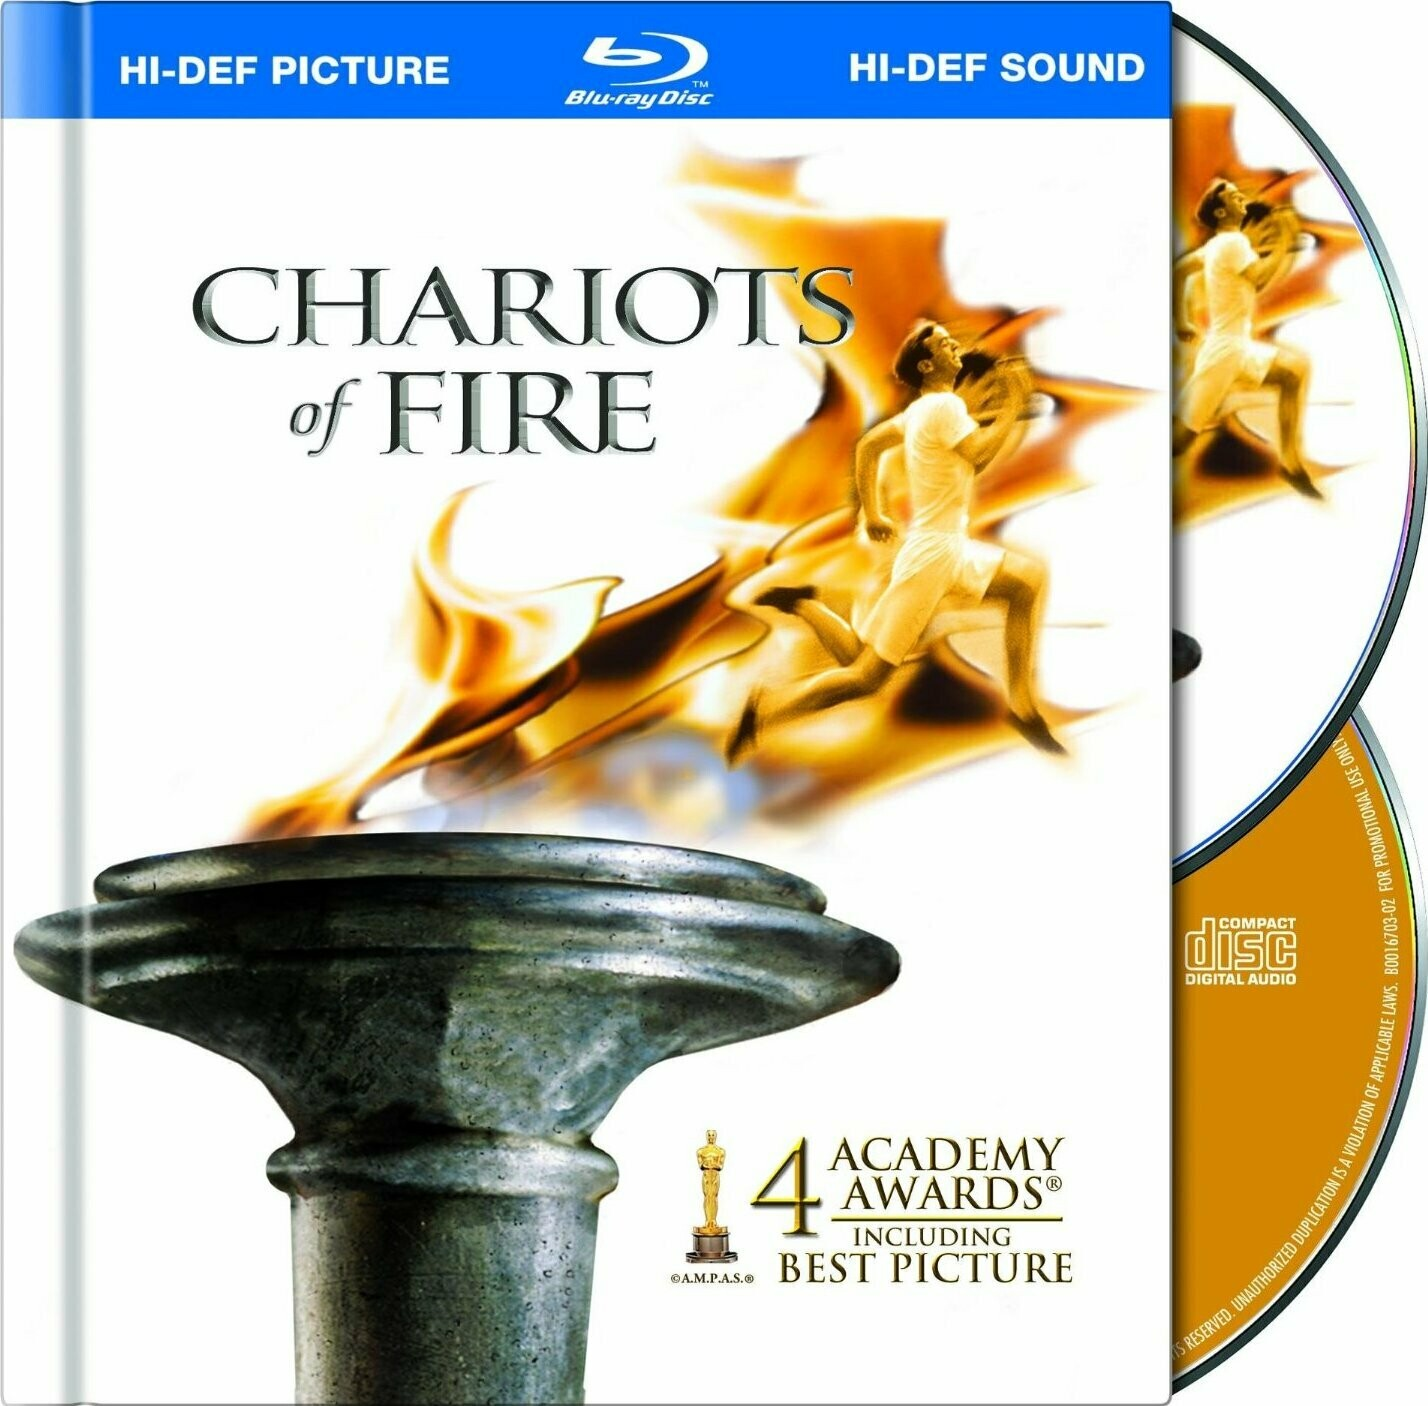 CHARIOTS OF FIRE - BLURAY